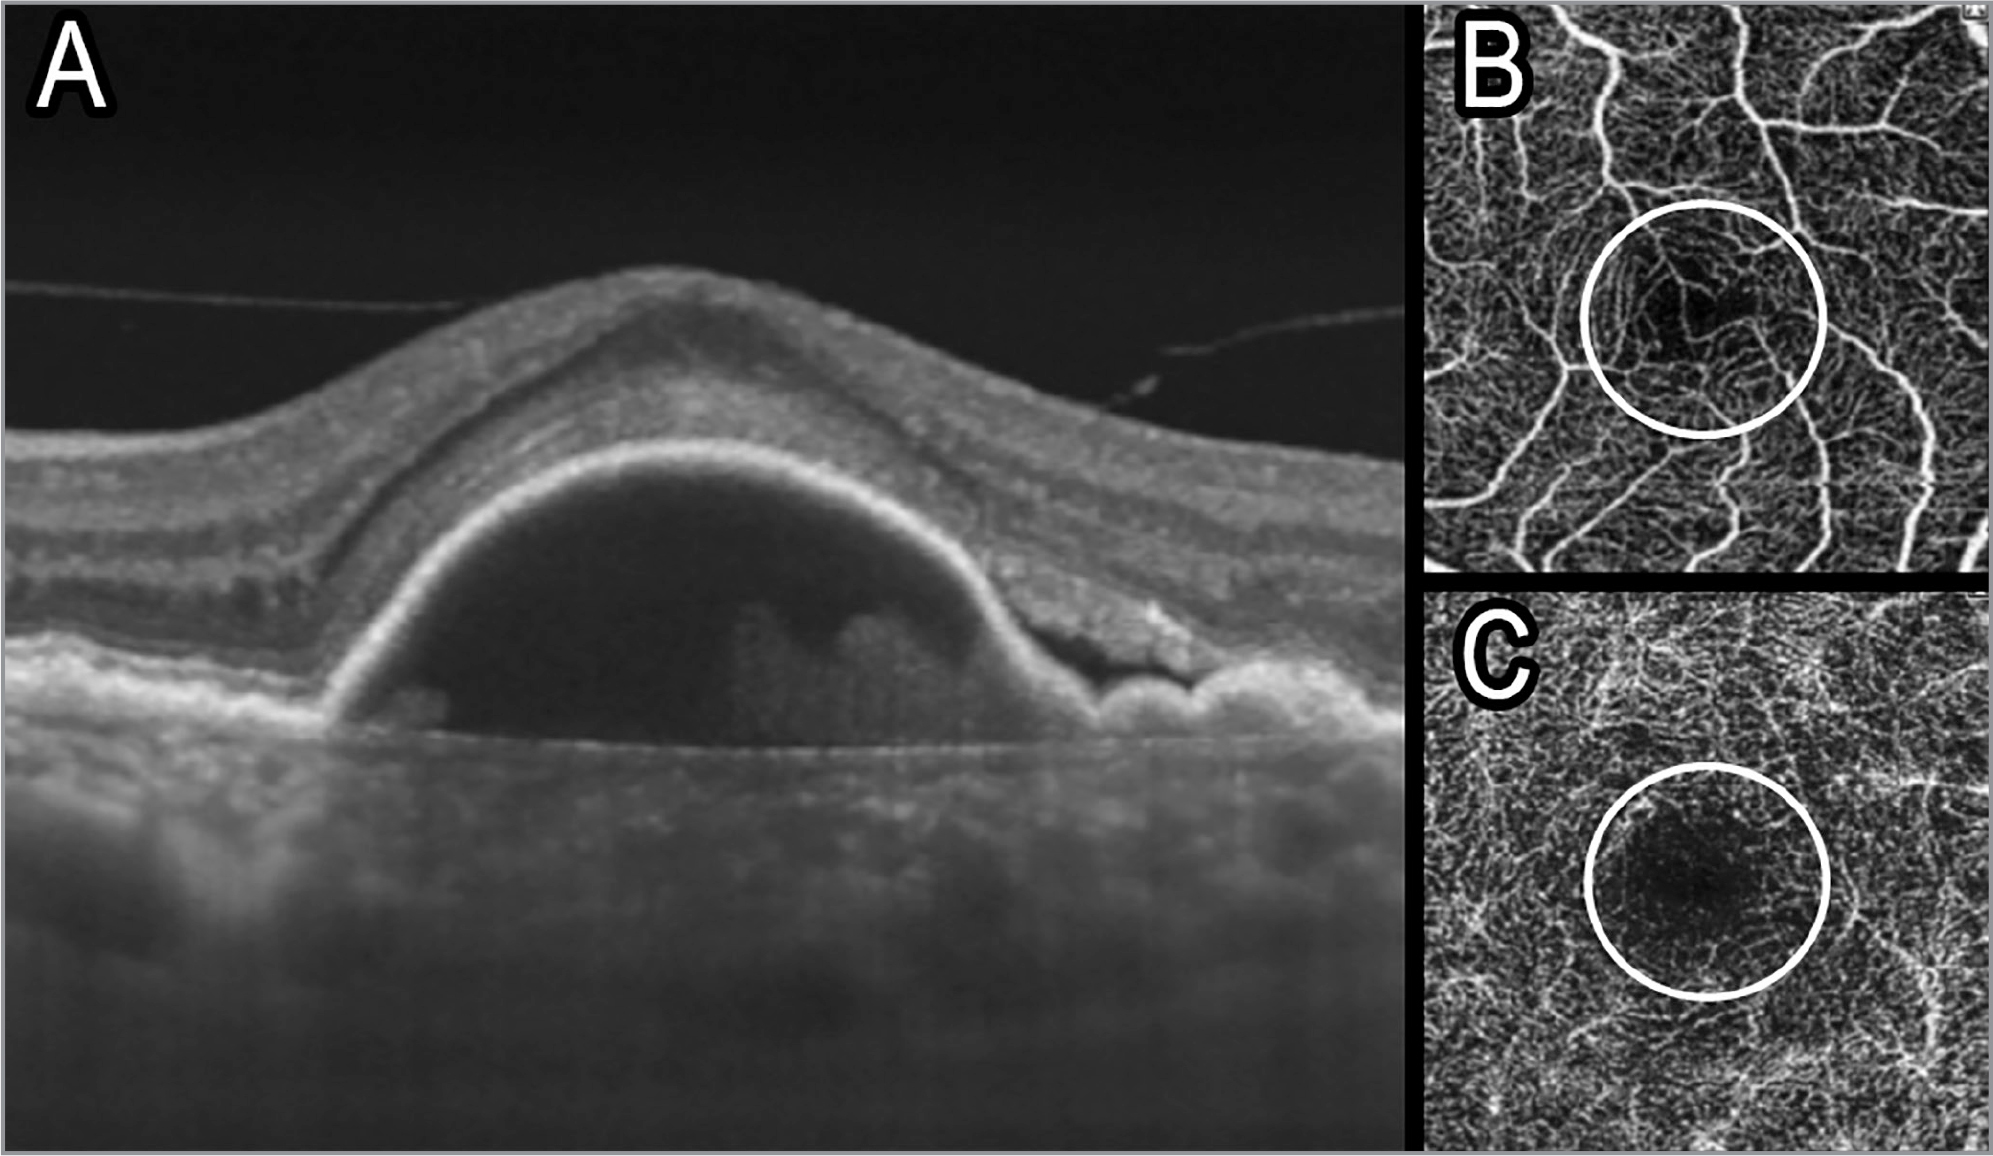 Swept-source optical coherence tomography of the left eye showing a pigment epithelial detachment (A). The superficial capillary plexus was vascularized (B), whereas the deep capillary plexus had an intact foveal avascular zone (C).